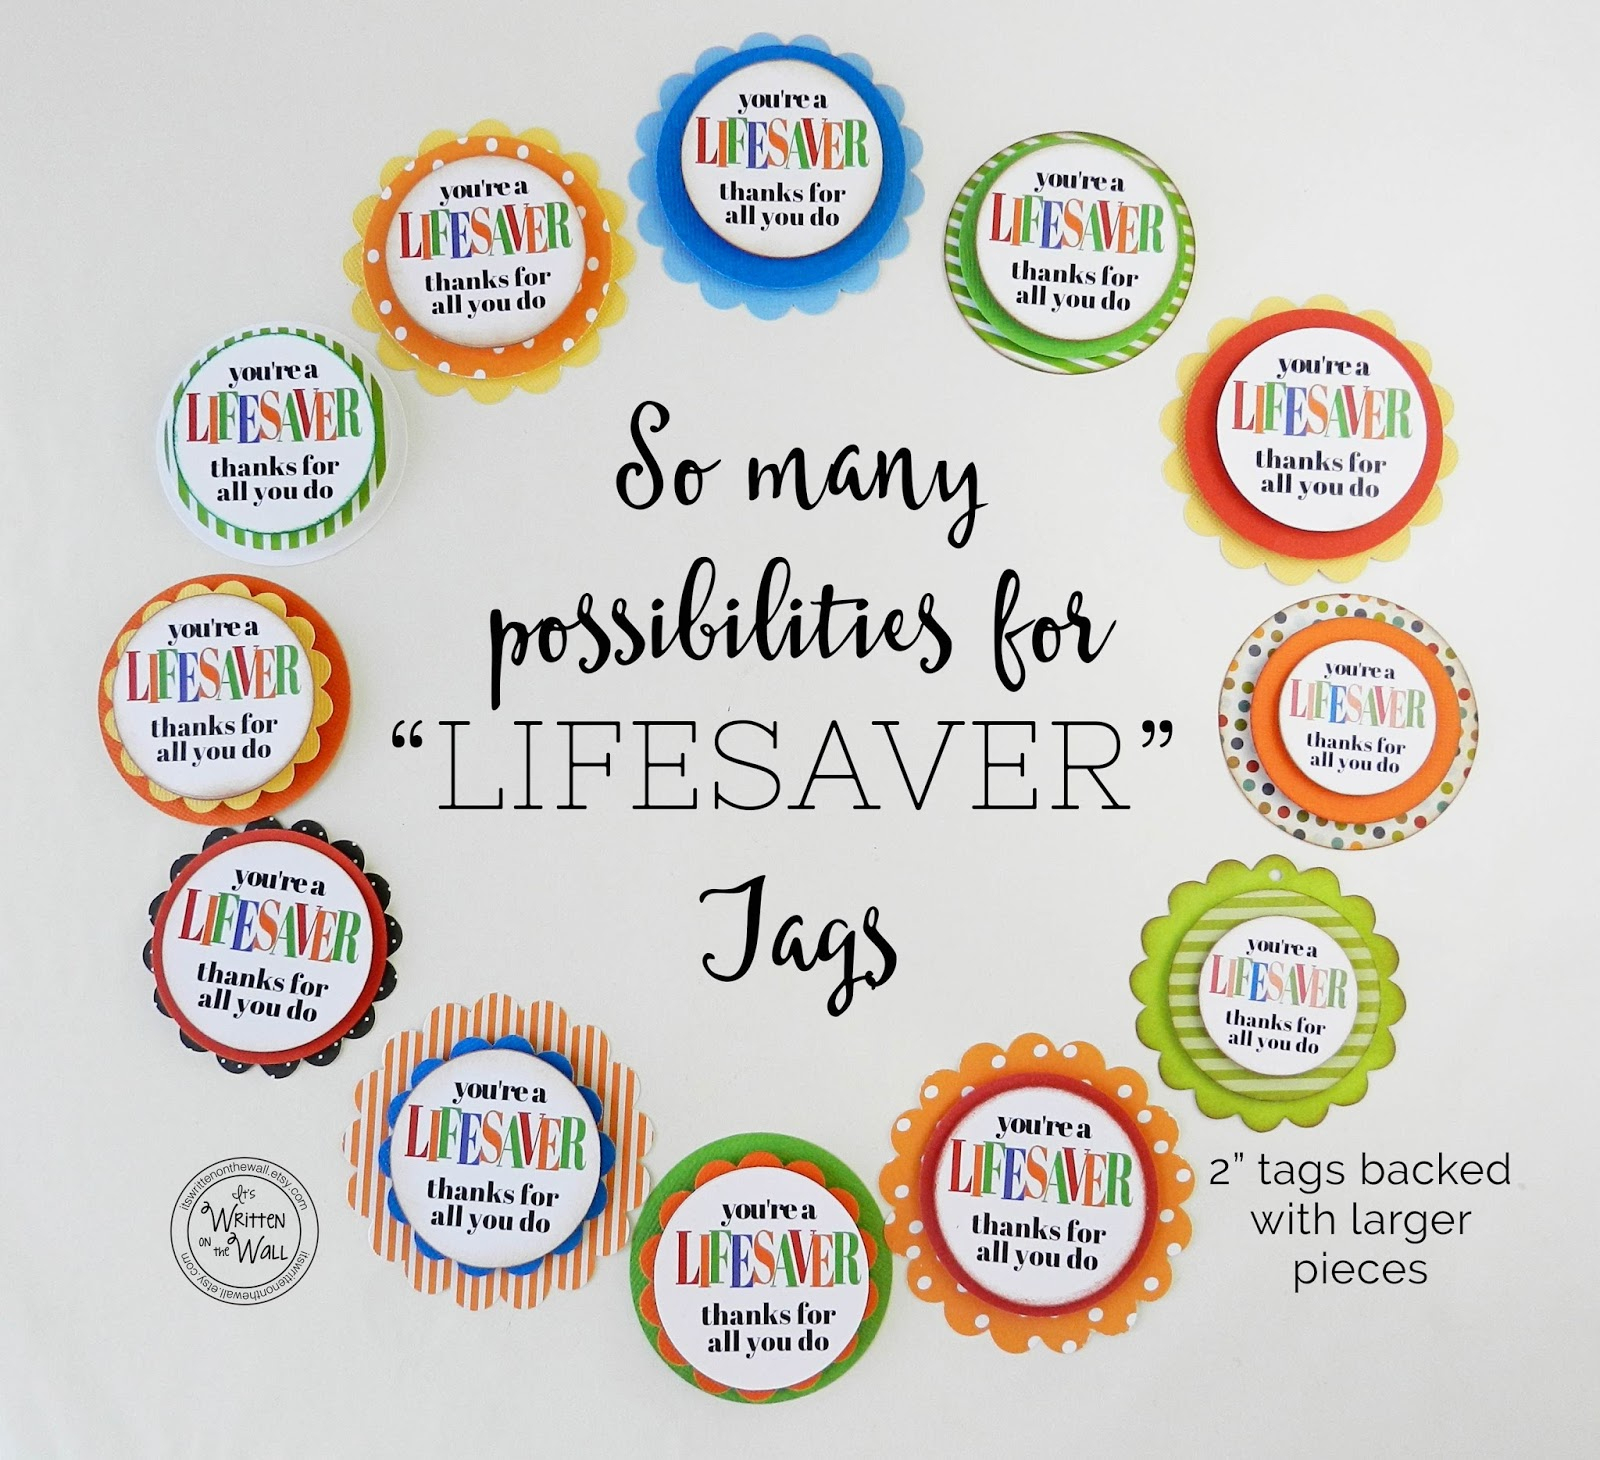 Free Printable Lifesaver Tags - All Free Tag Designs - Free Printable Lifesaver Tags